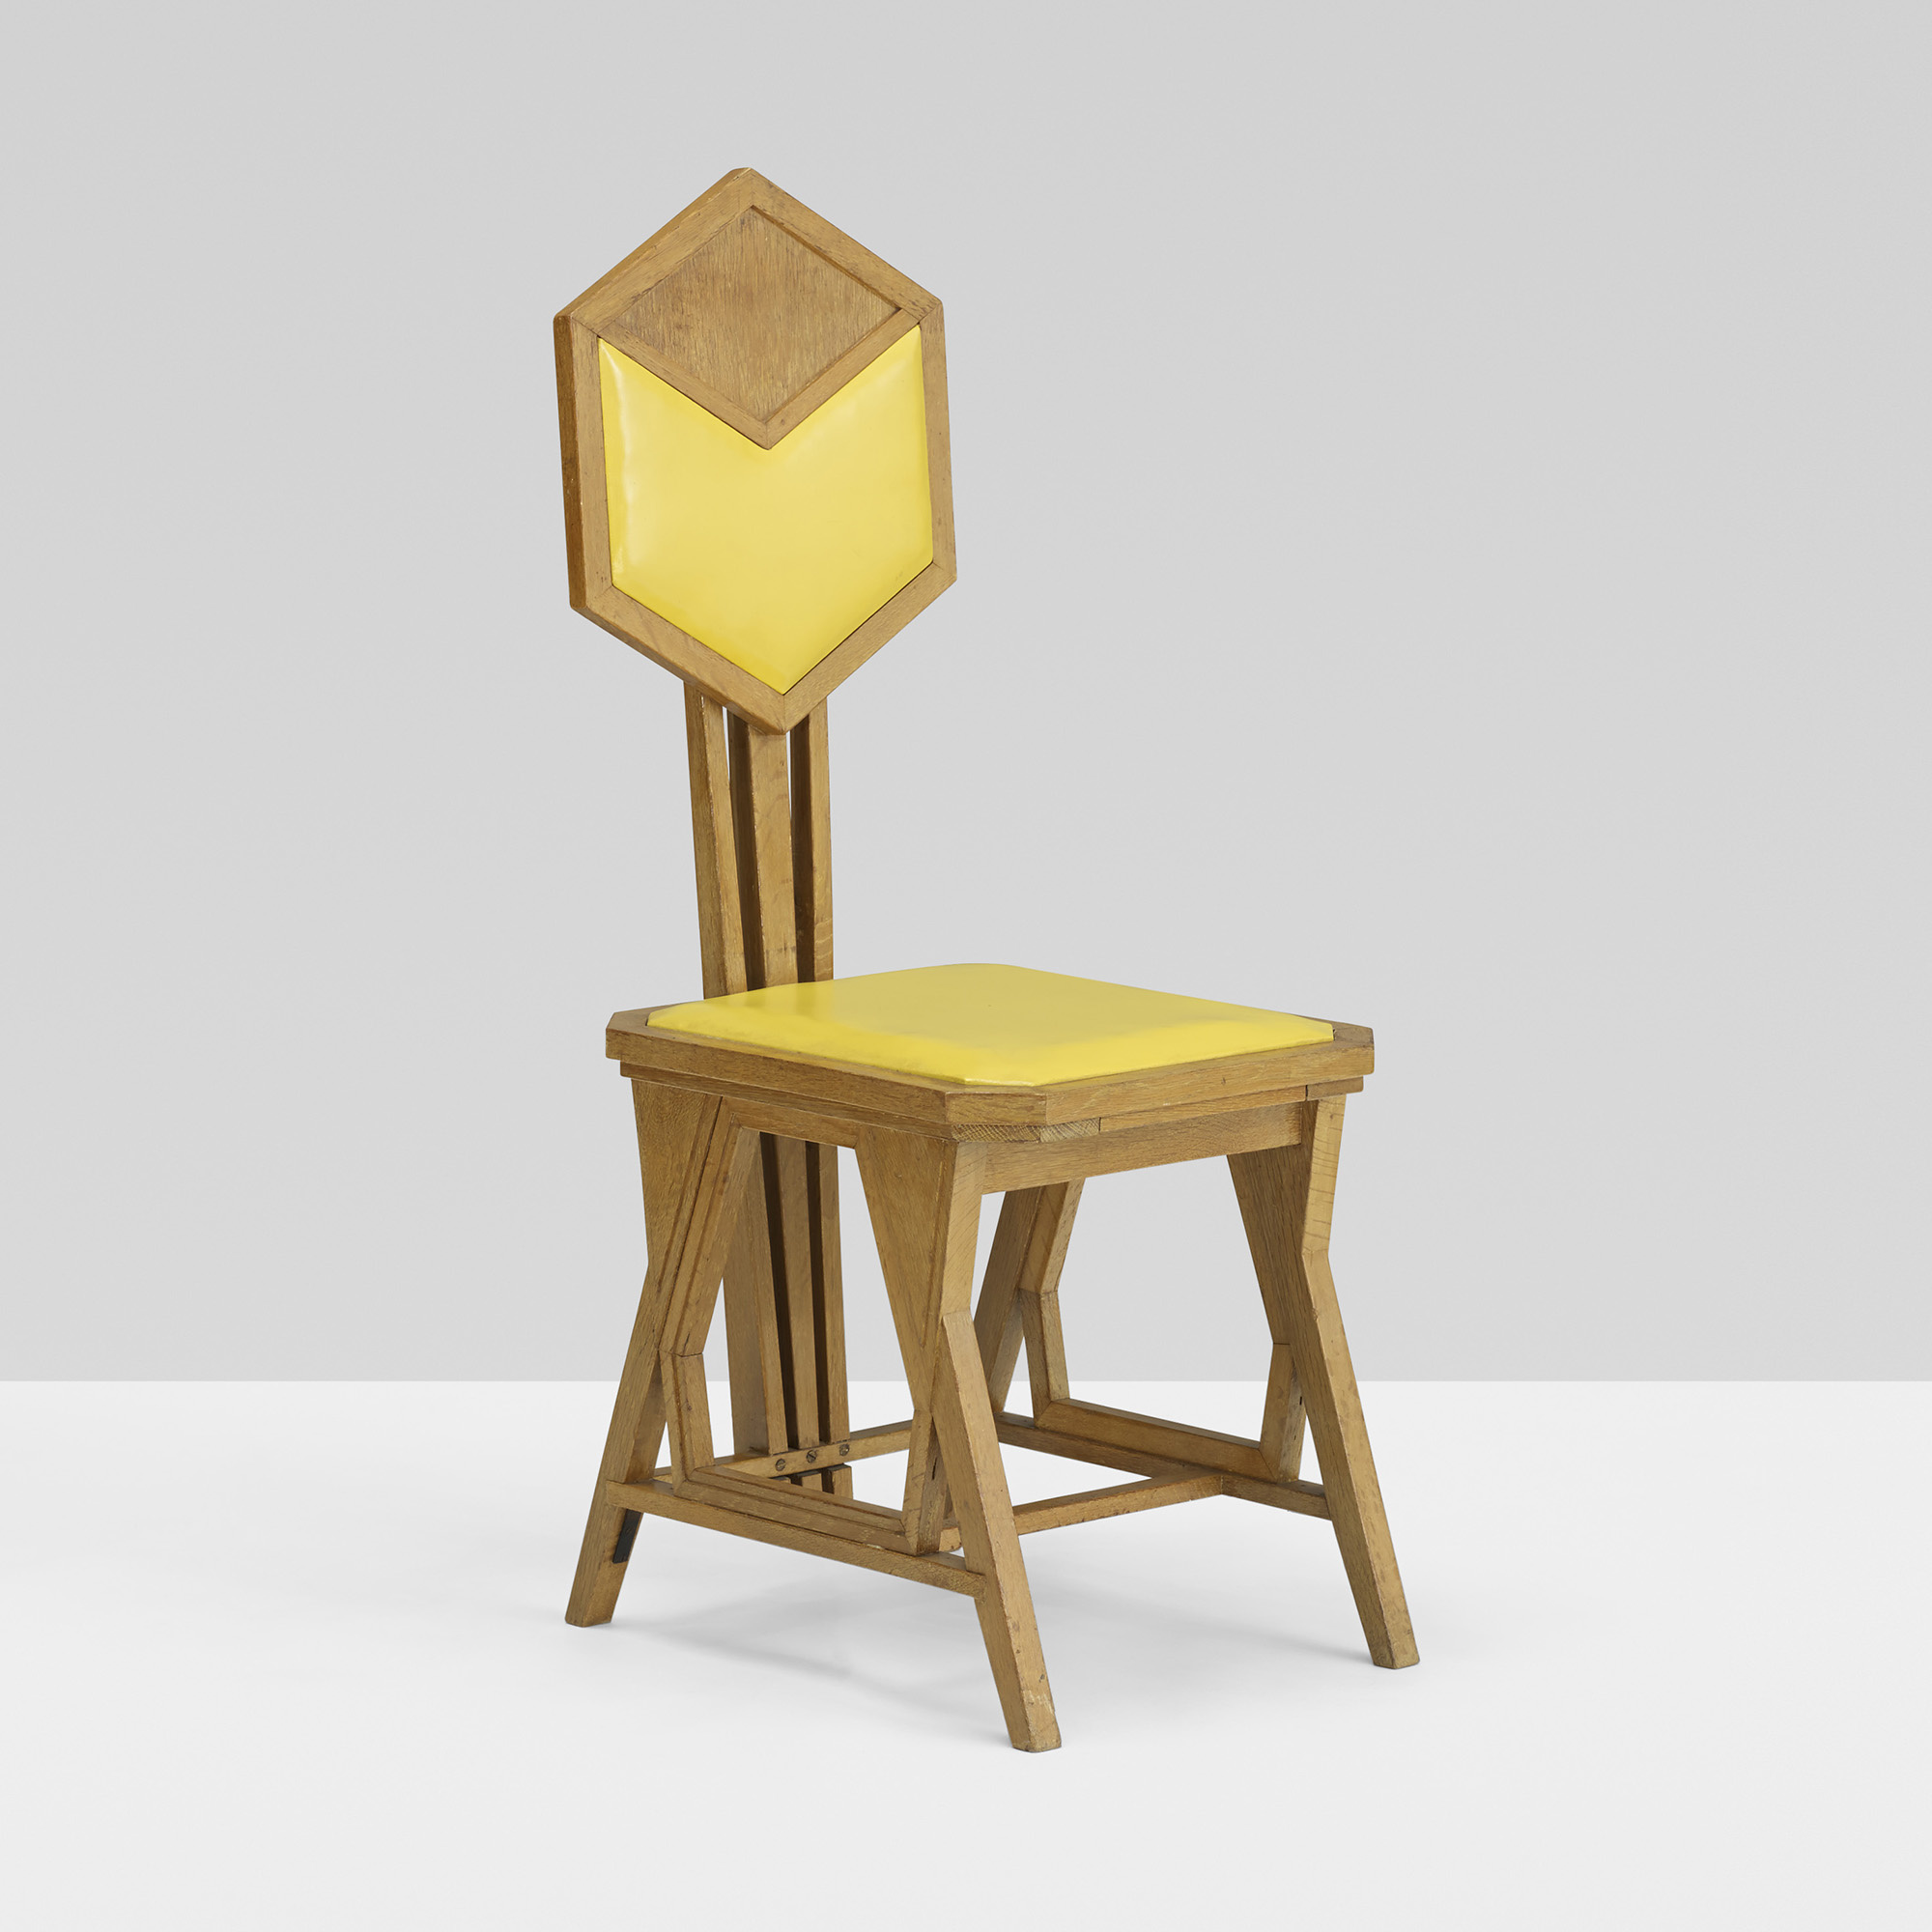 148 Frank Lloyd Wright Chair From The Imperial Hotel Tokyo 1 Of